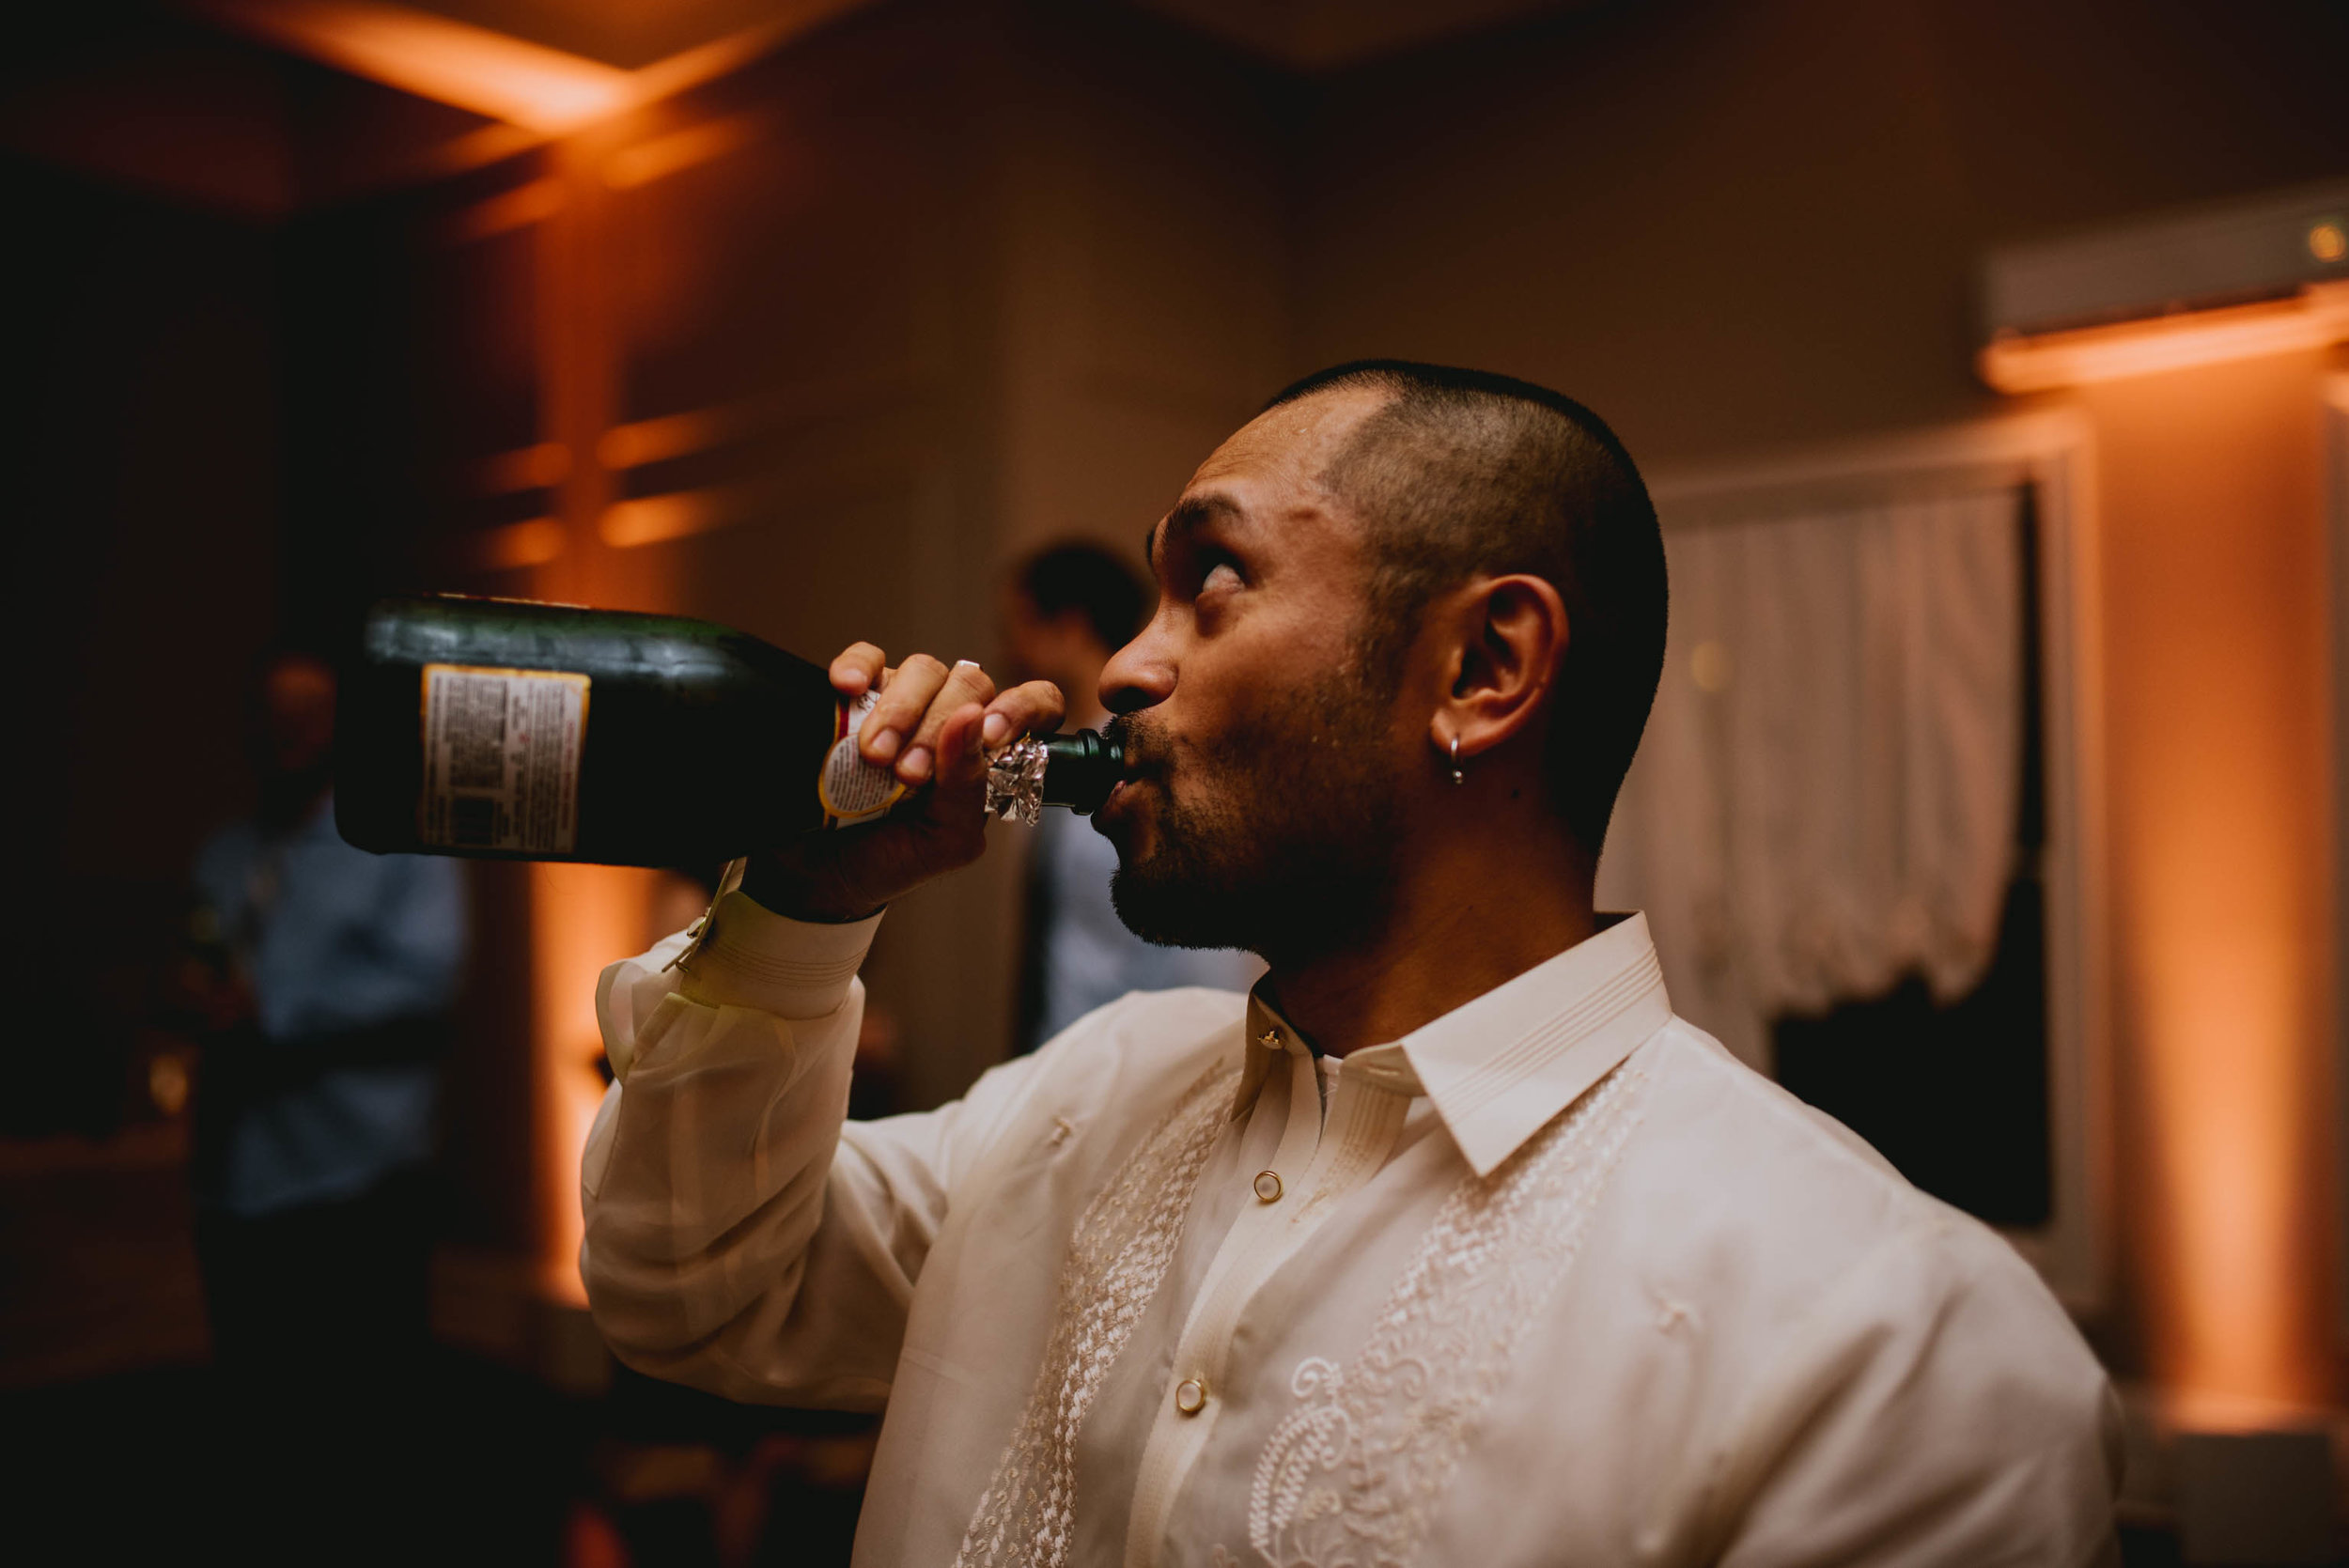 groom throwing back some champagne during wedding reception